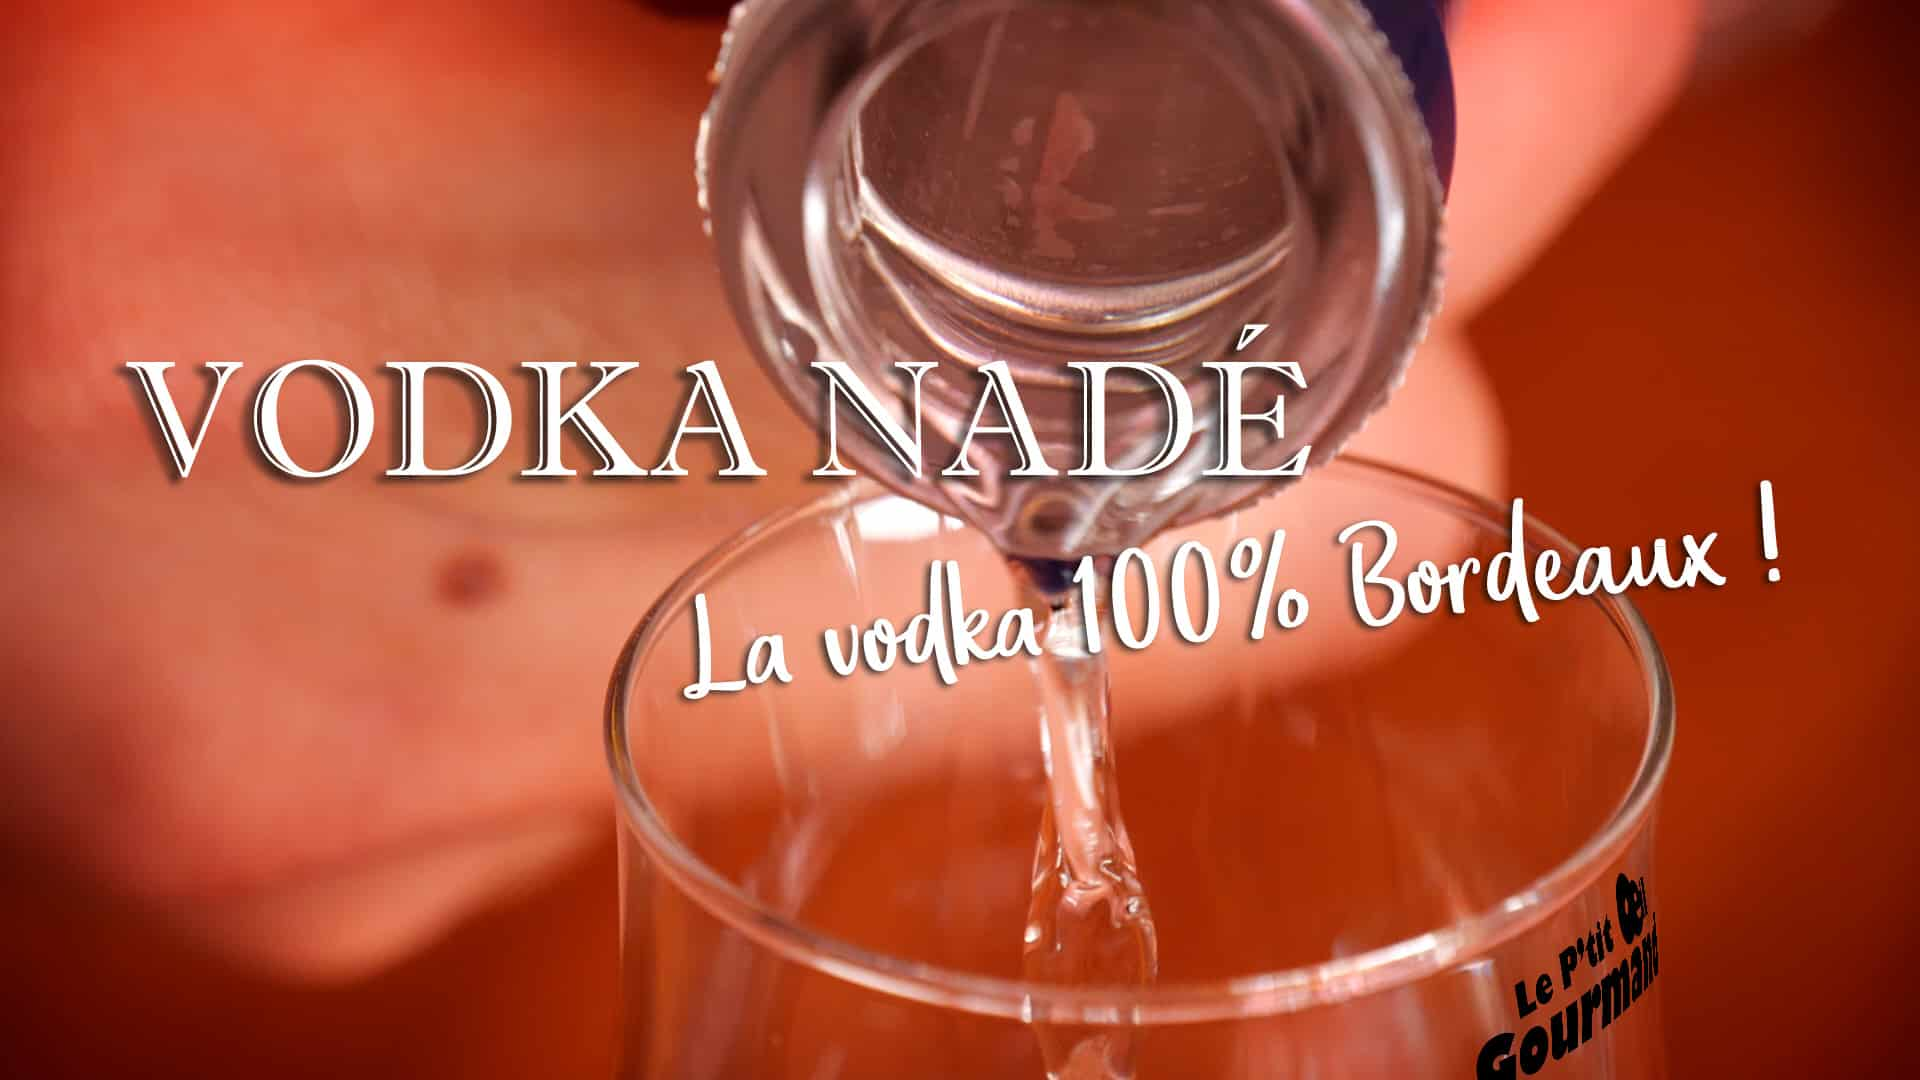 Vodka Nadé, la vodka 100% Bordeaux